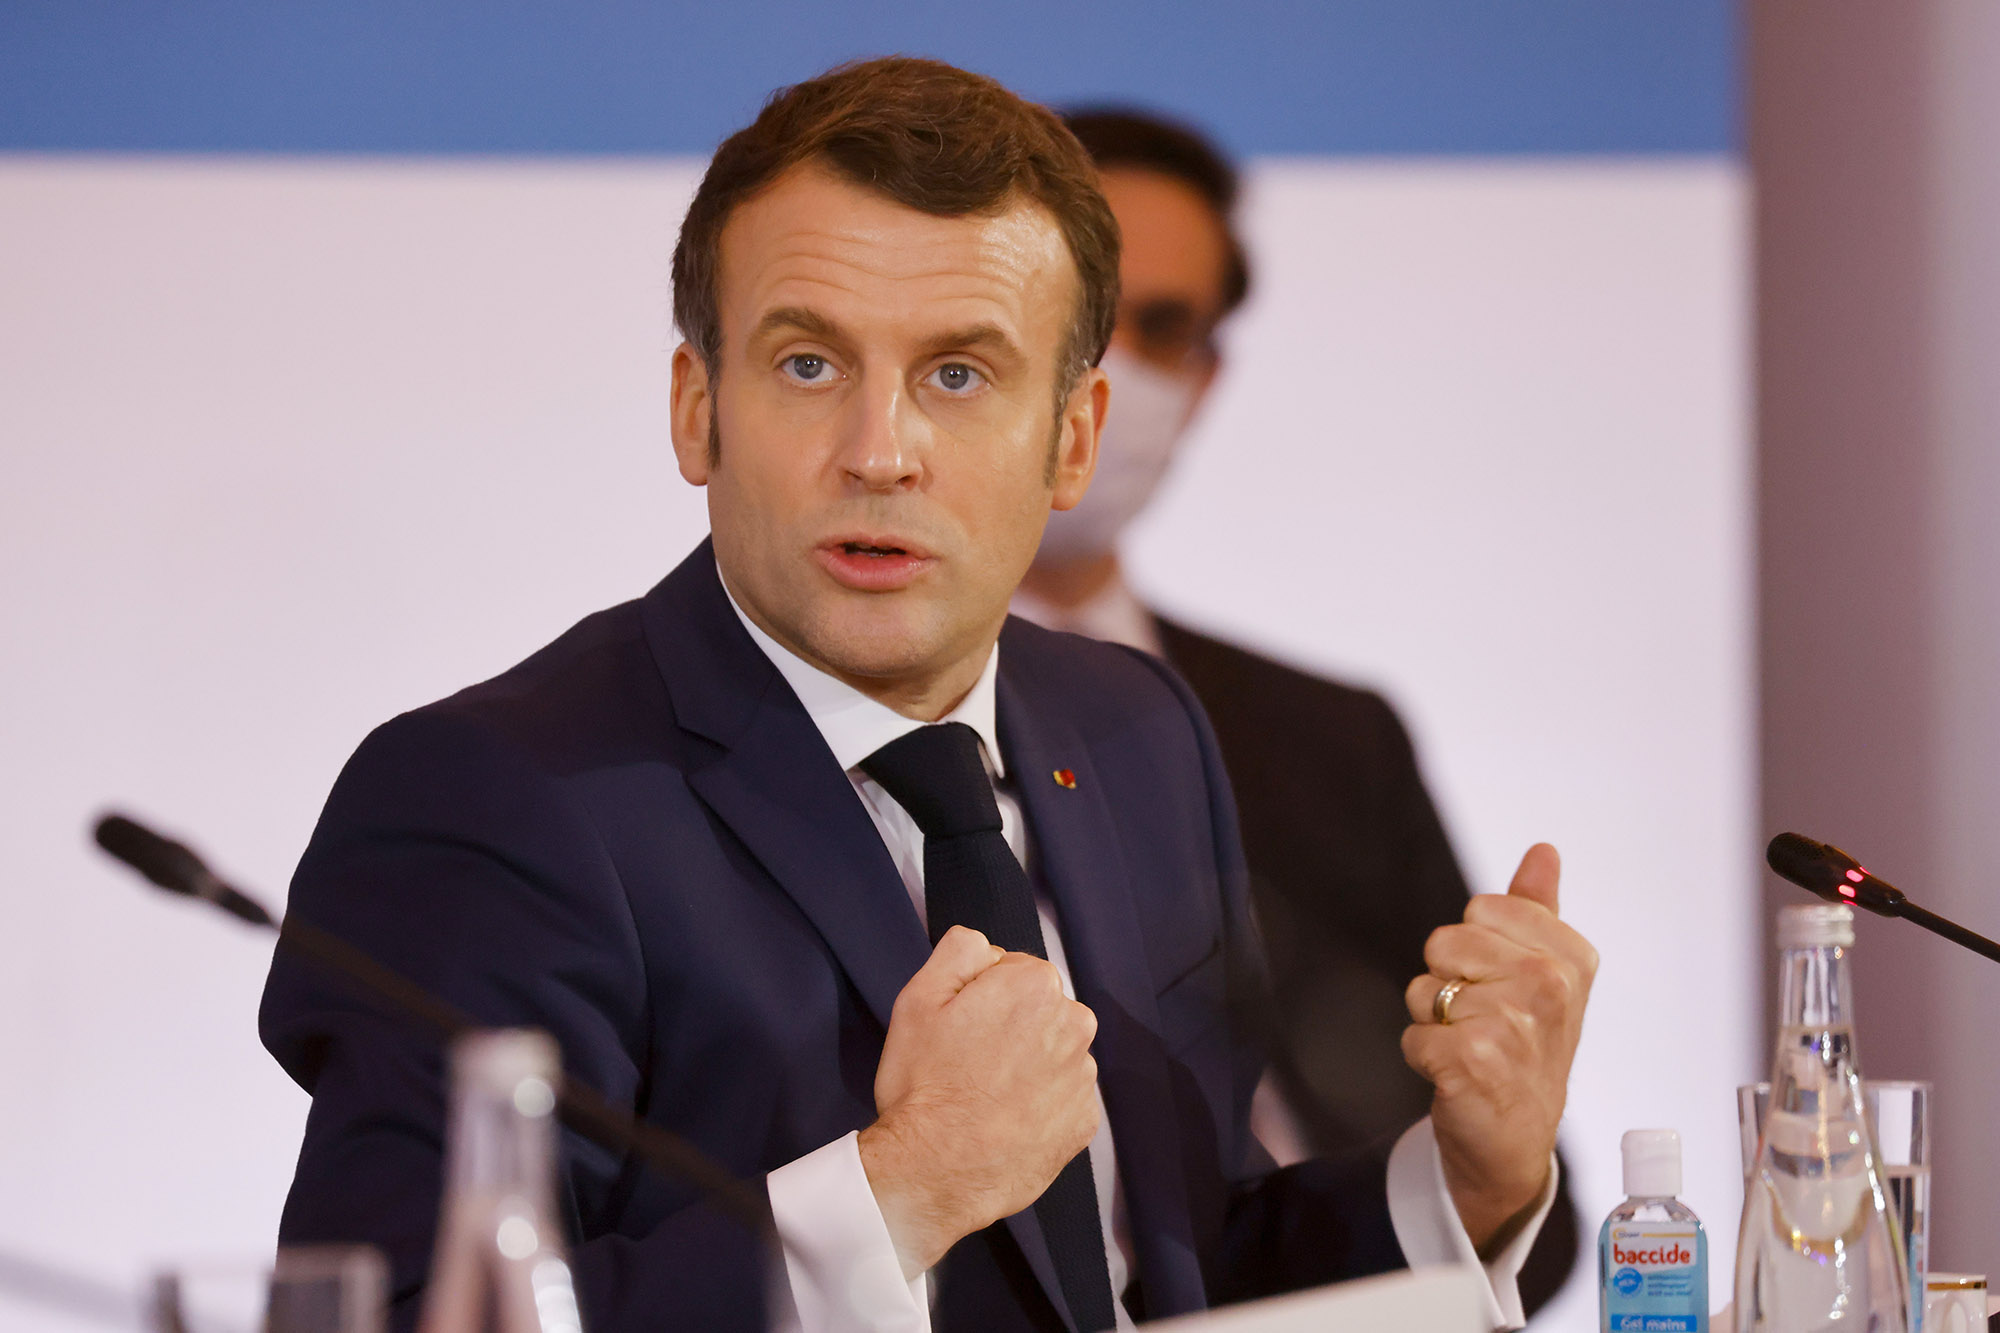 French President Emmanuel Macron delivers a speech at the end of the One Planet Summit held at the Elysee Palace, in Paris, France on January 11, 2021.